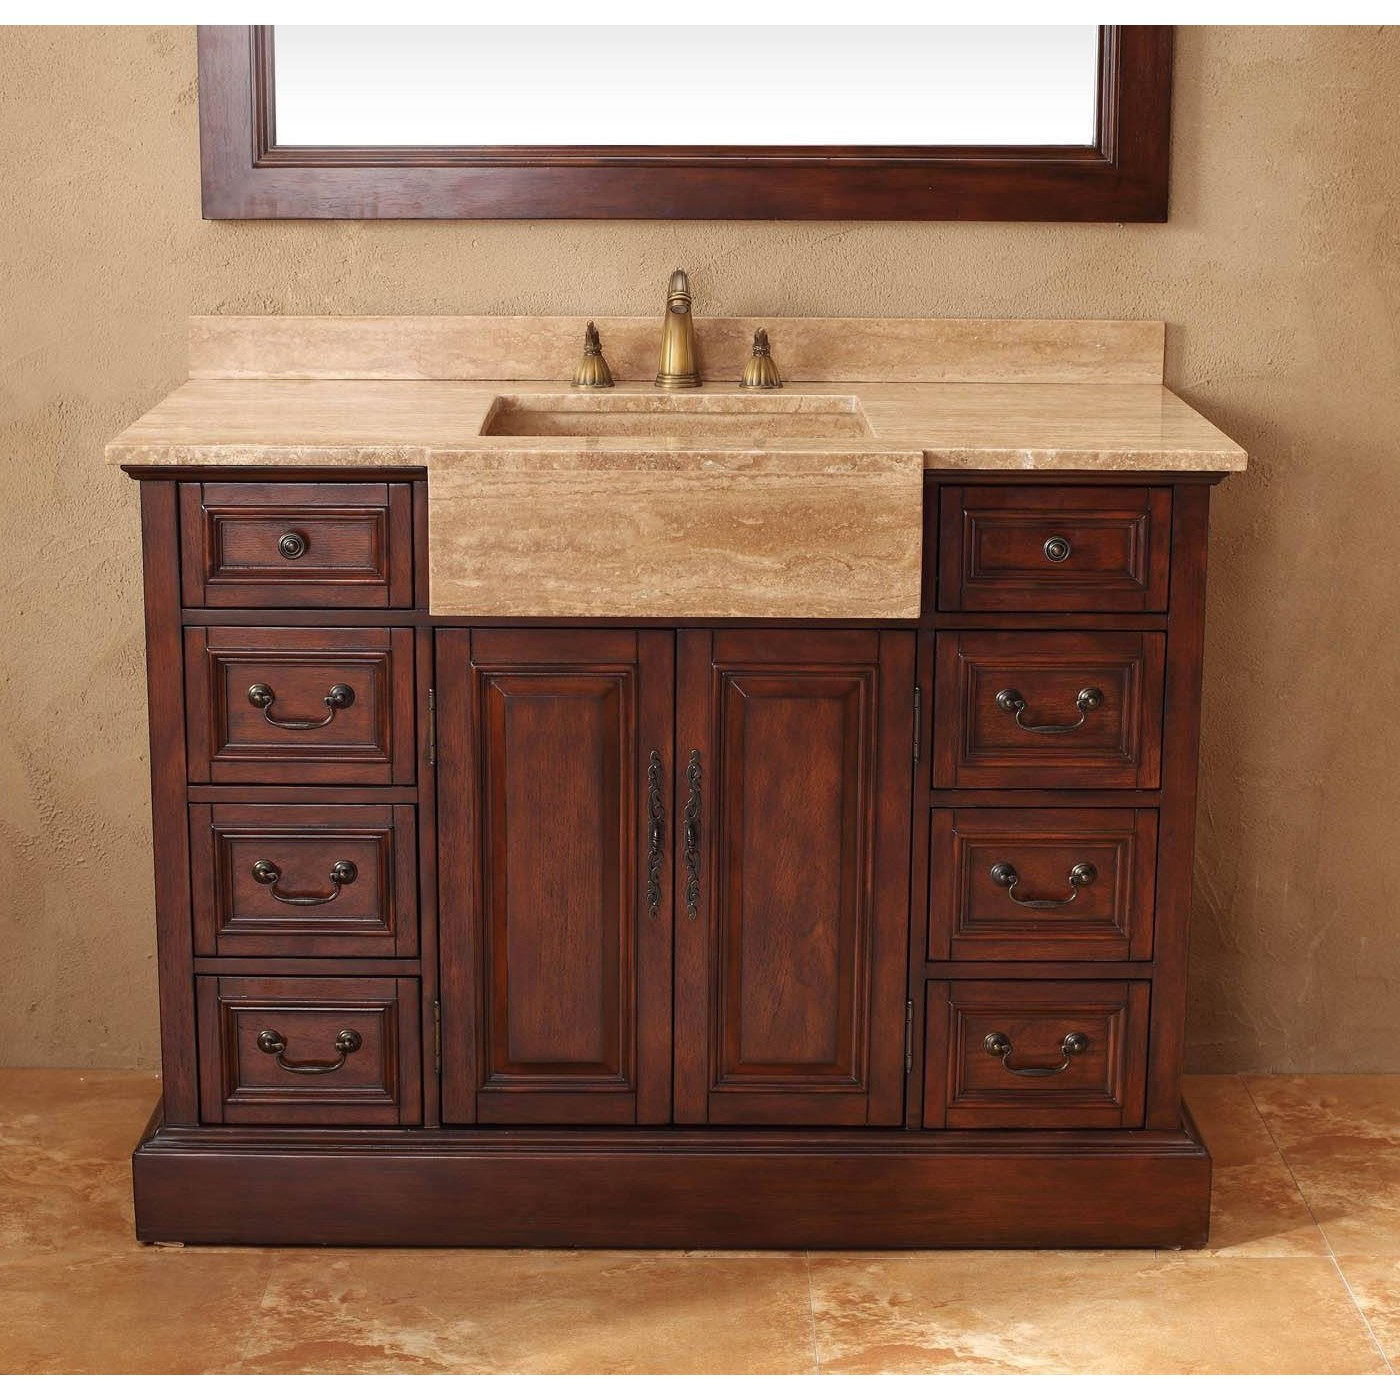 Home Depot Vanities Bathroom | Vanity Home Depot | Vanities Home Depot